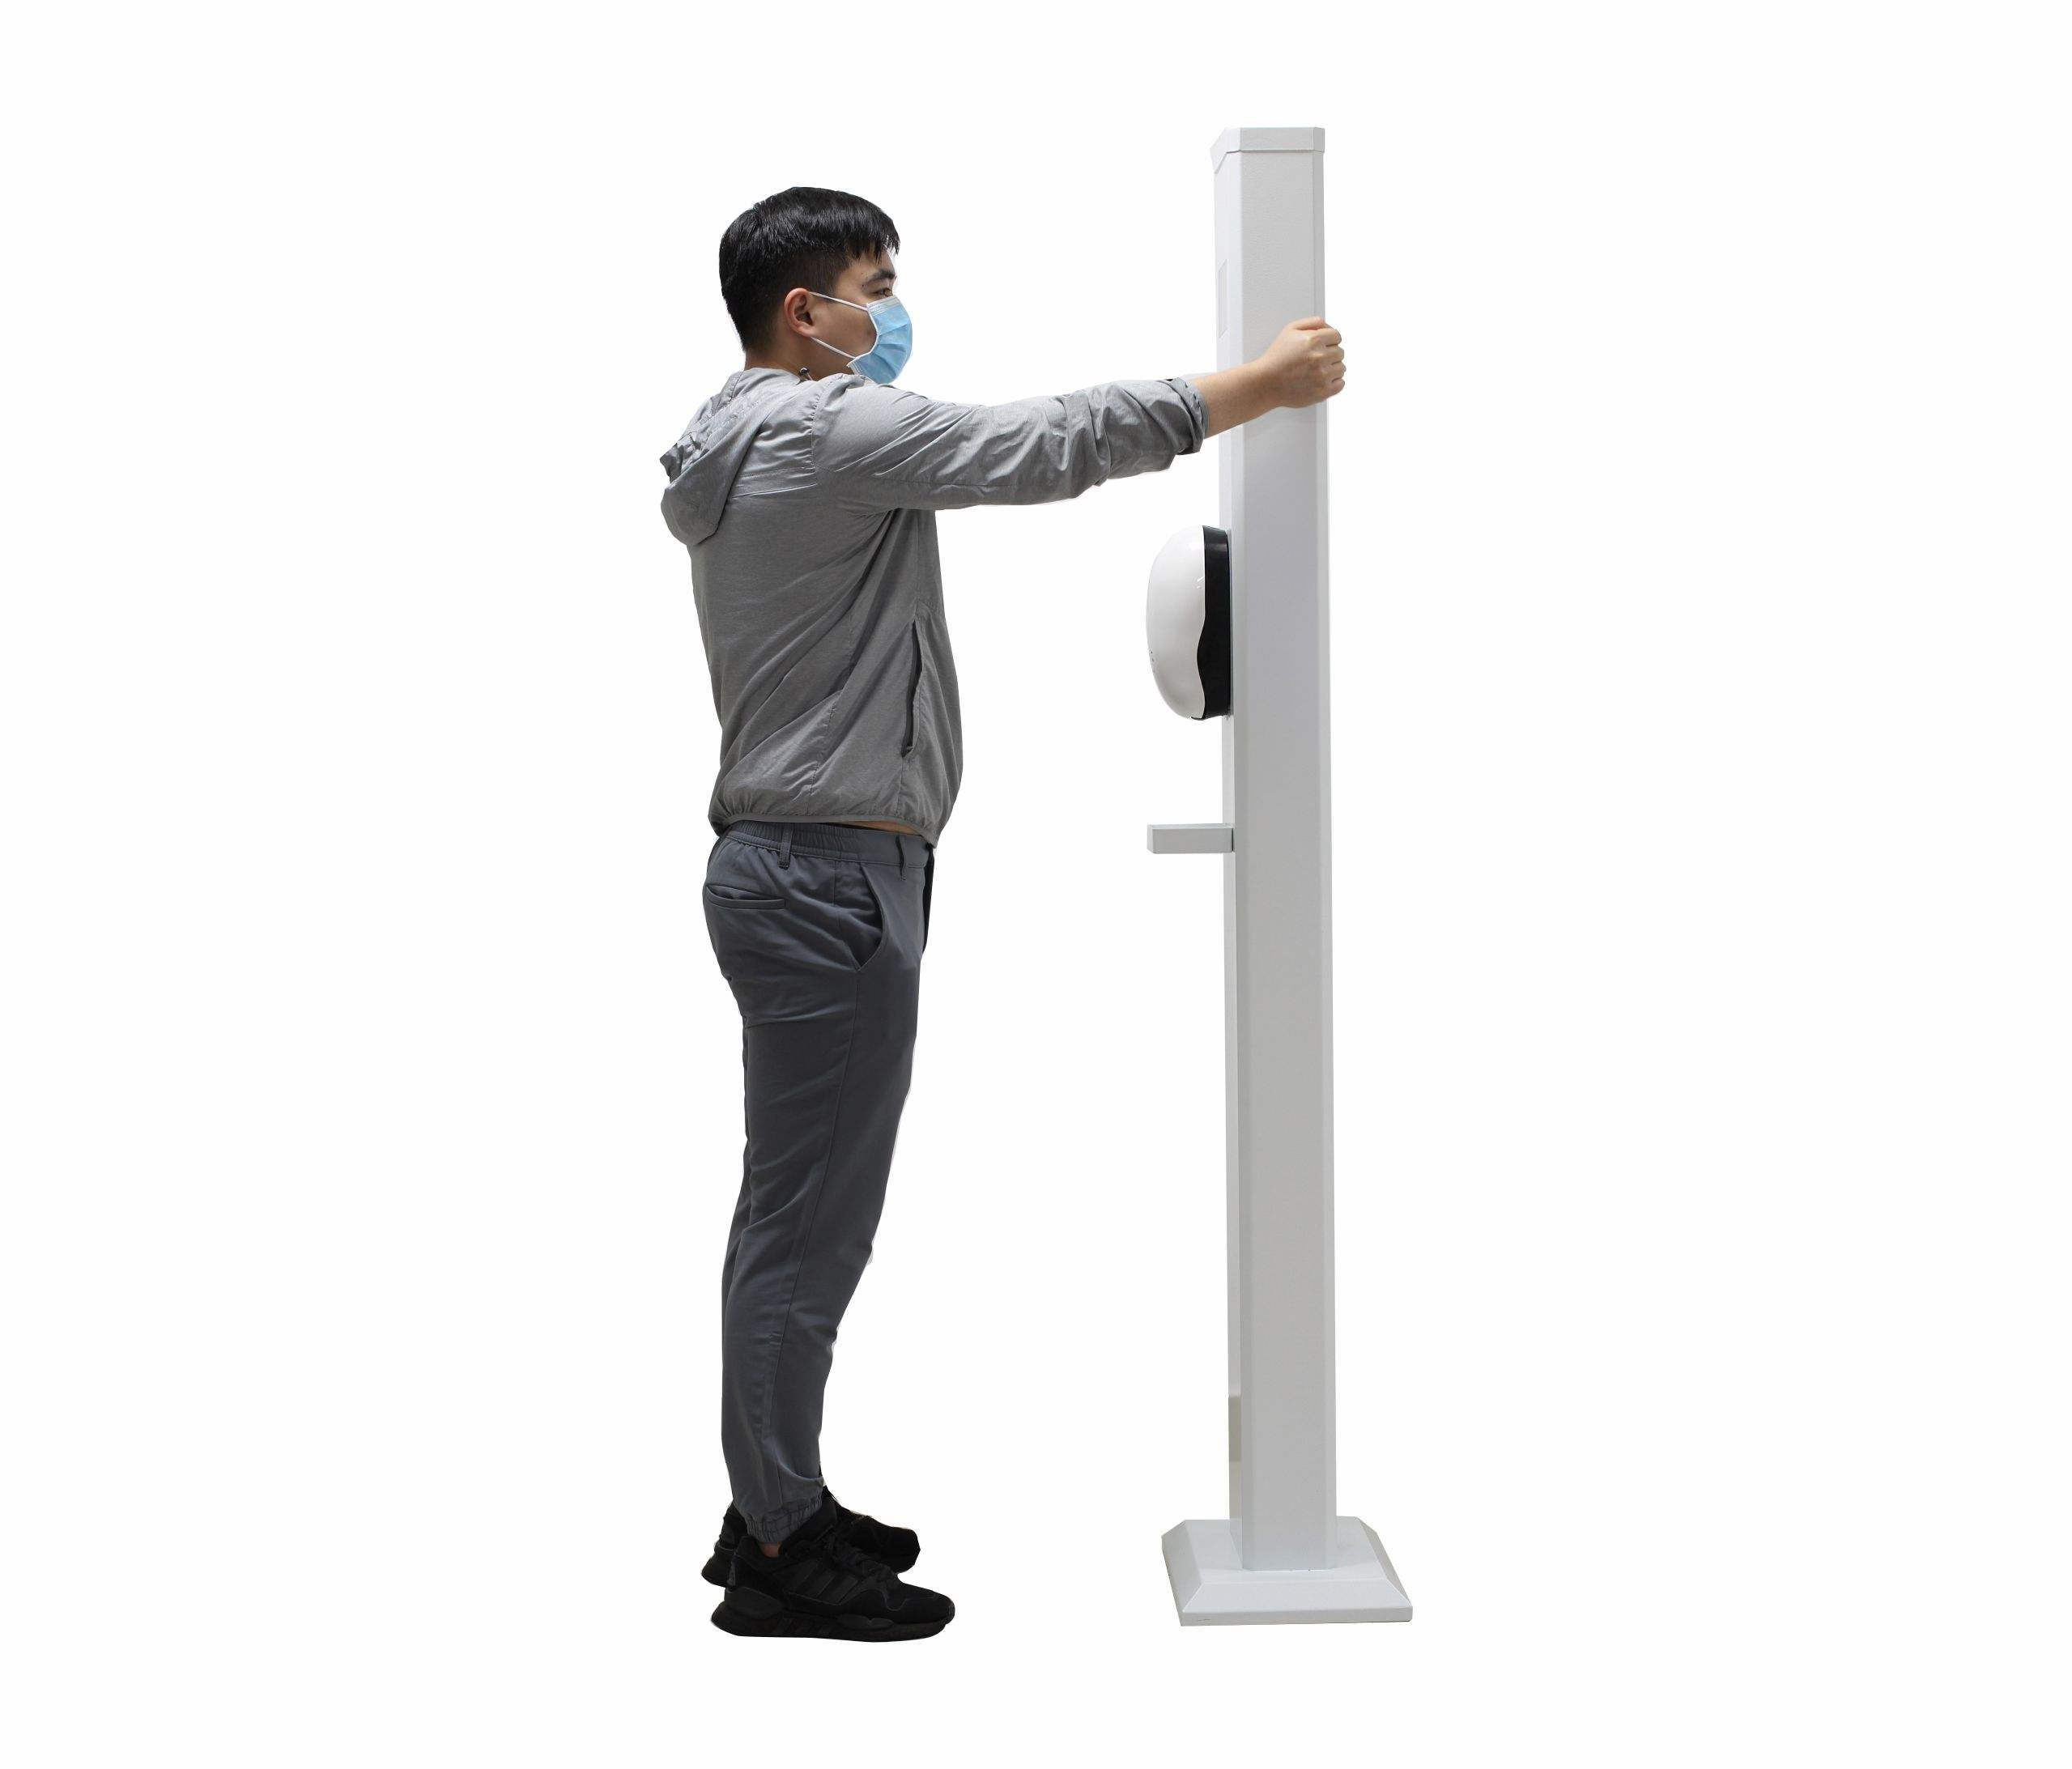 Dick measuring device body scanner